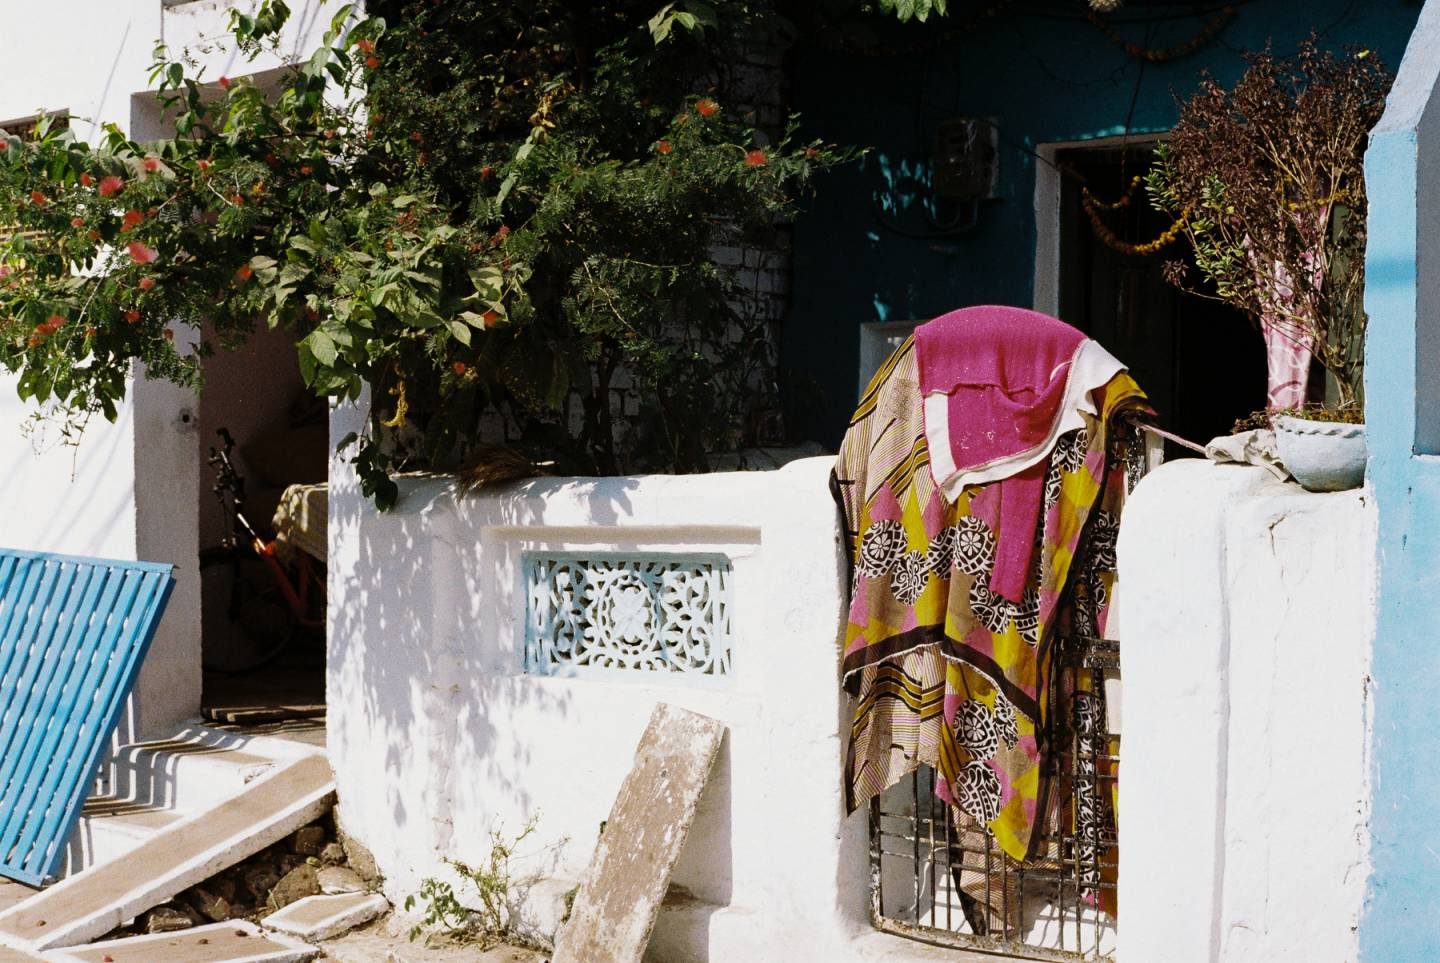 Lindsay Interview | Caught on Film: Max Lieberman Documents a Colourful Jabalpur